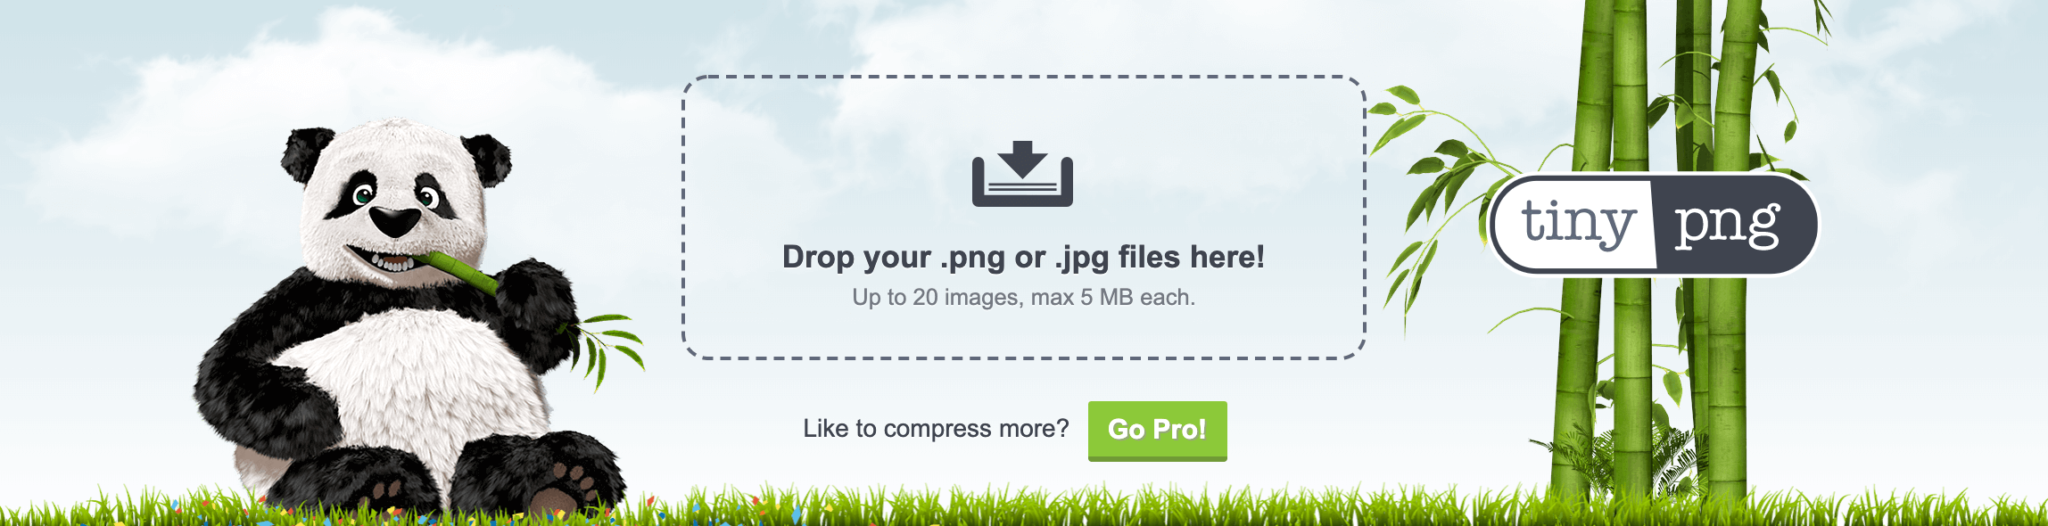 The TinyPNG image file compression tool.